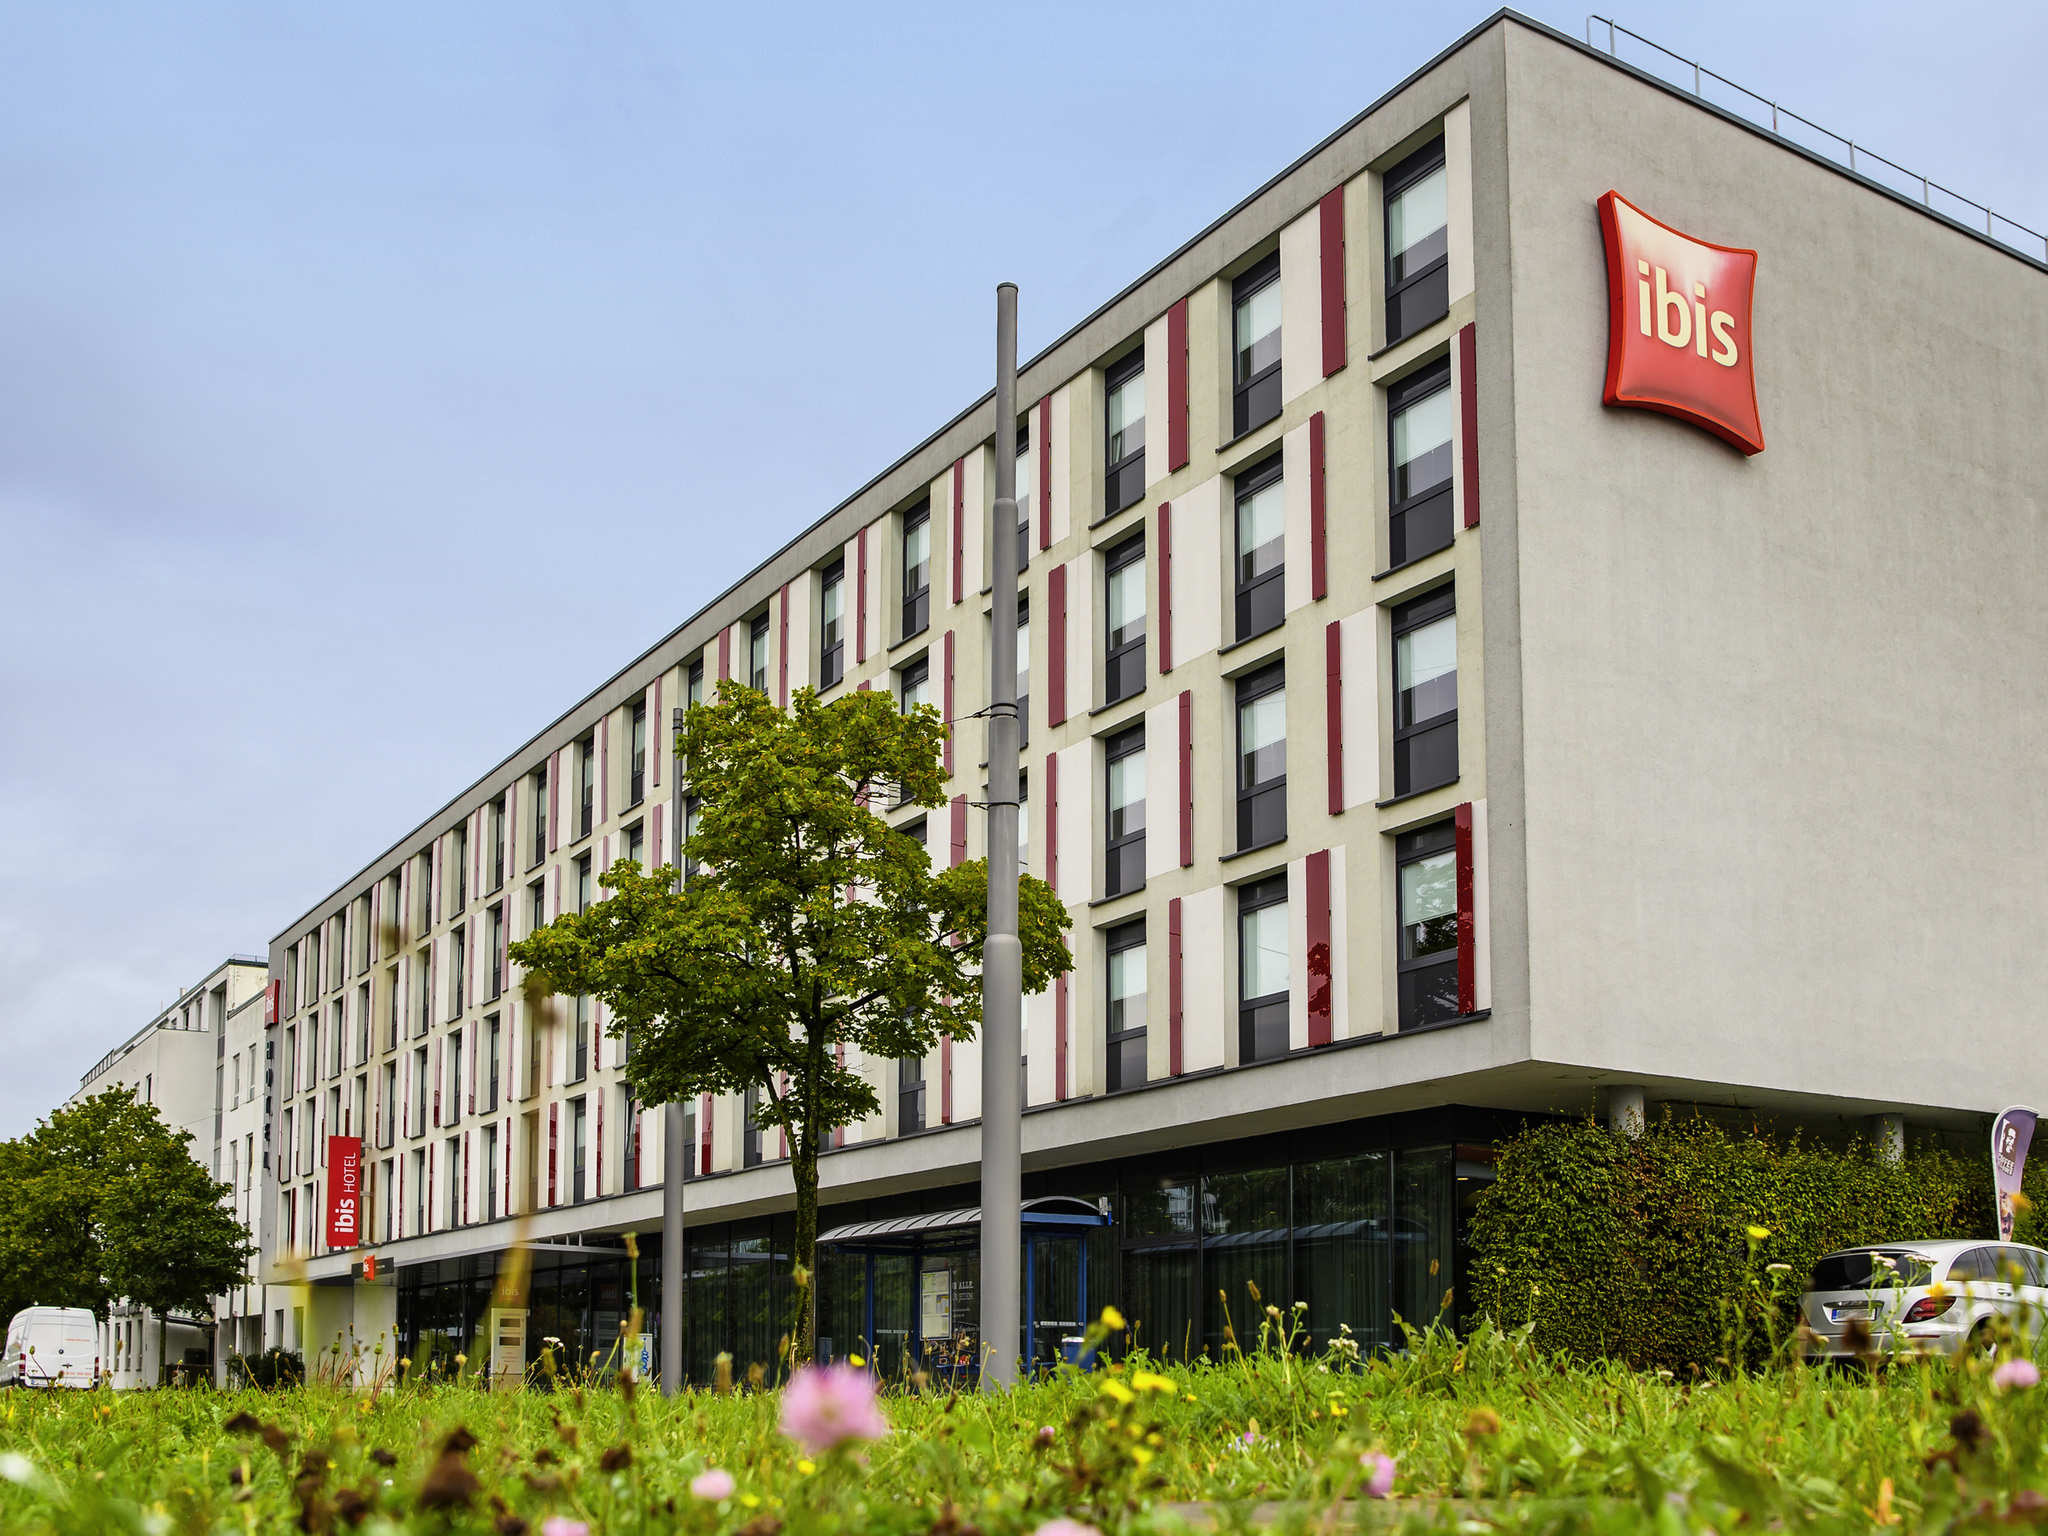 hotel ibis munich city west book your hotel now free wifi. Black Bedroom Furniture Sets. Home Design Ideas